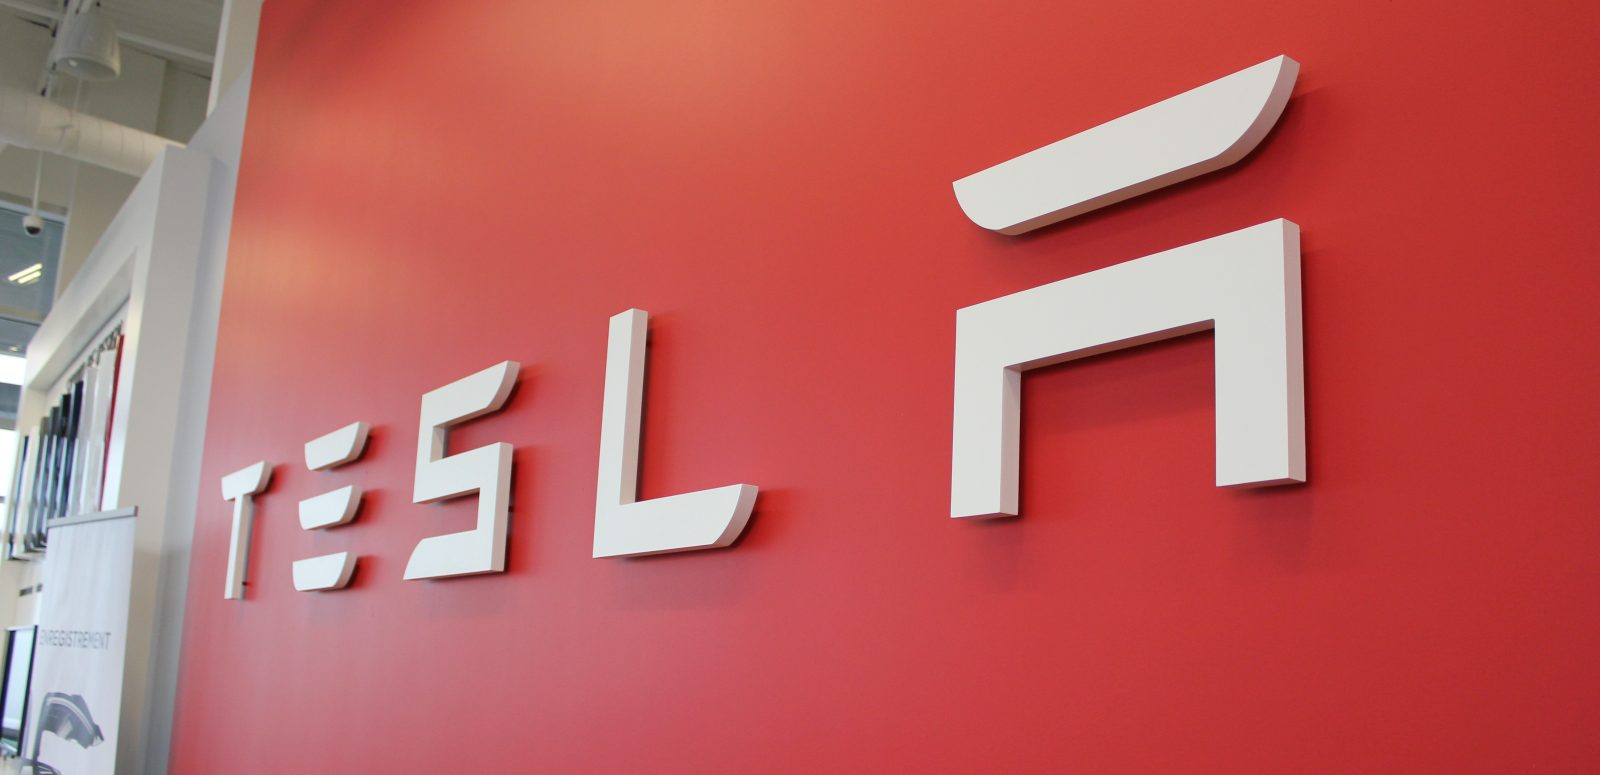 Tesla is about to release Q4 earnings; here's what to expect